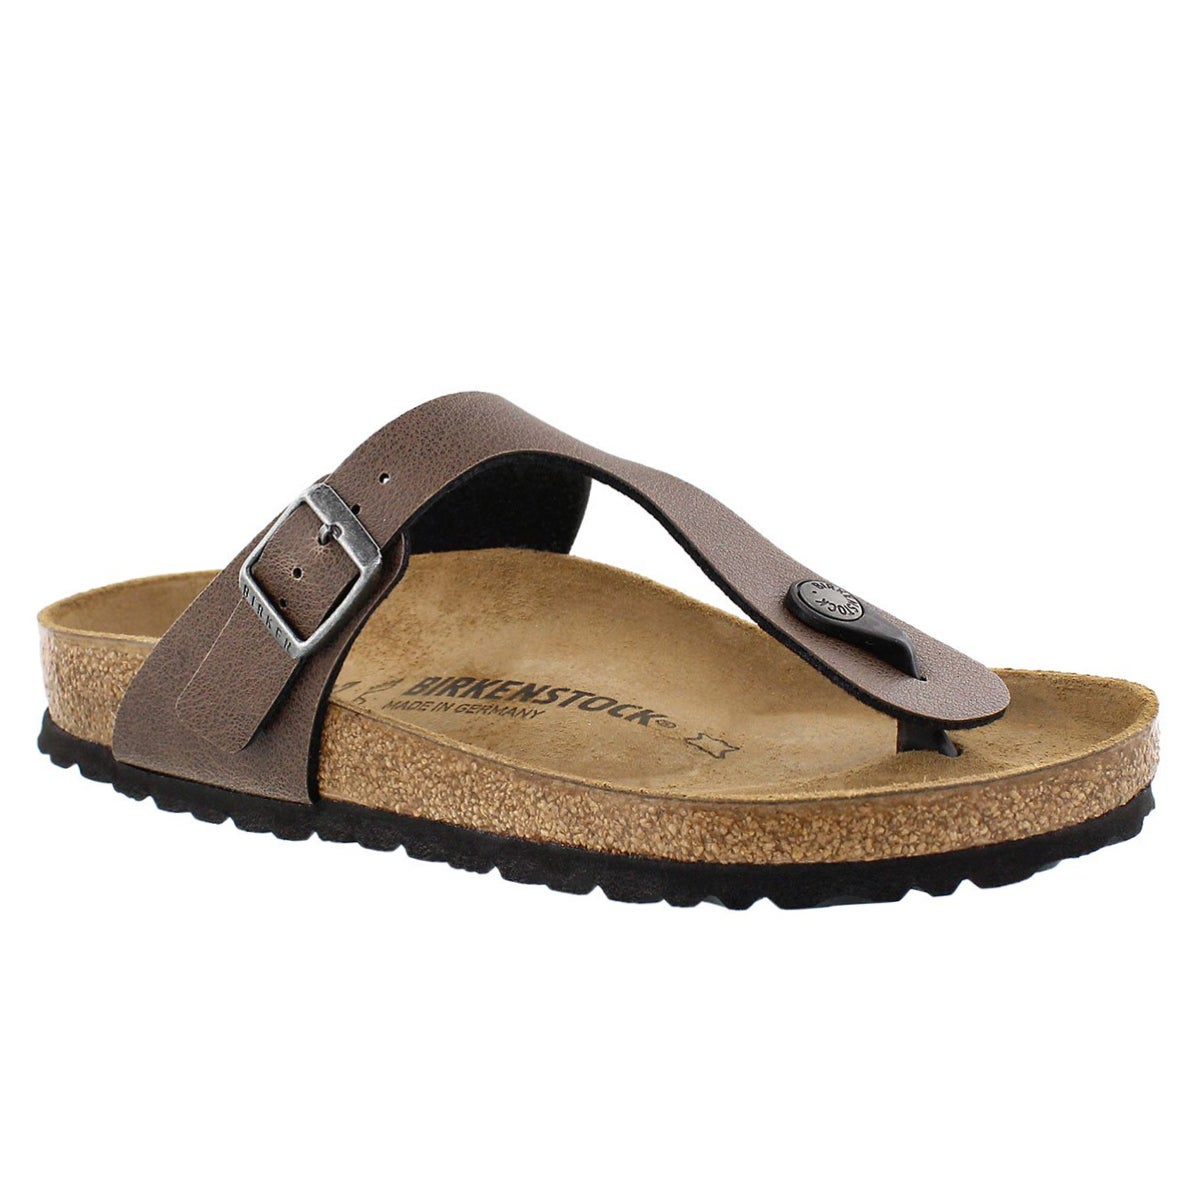 Women's GIZEH brown BF thong sandals